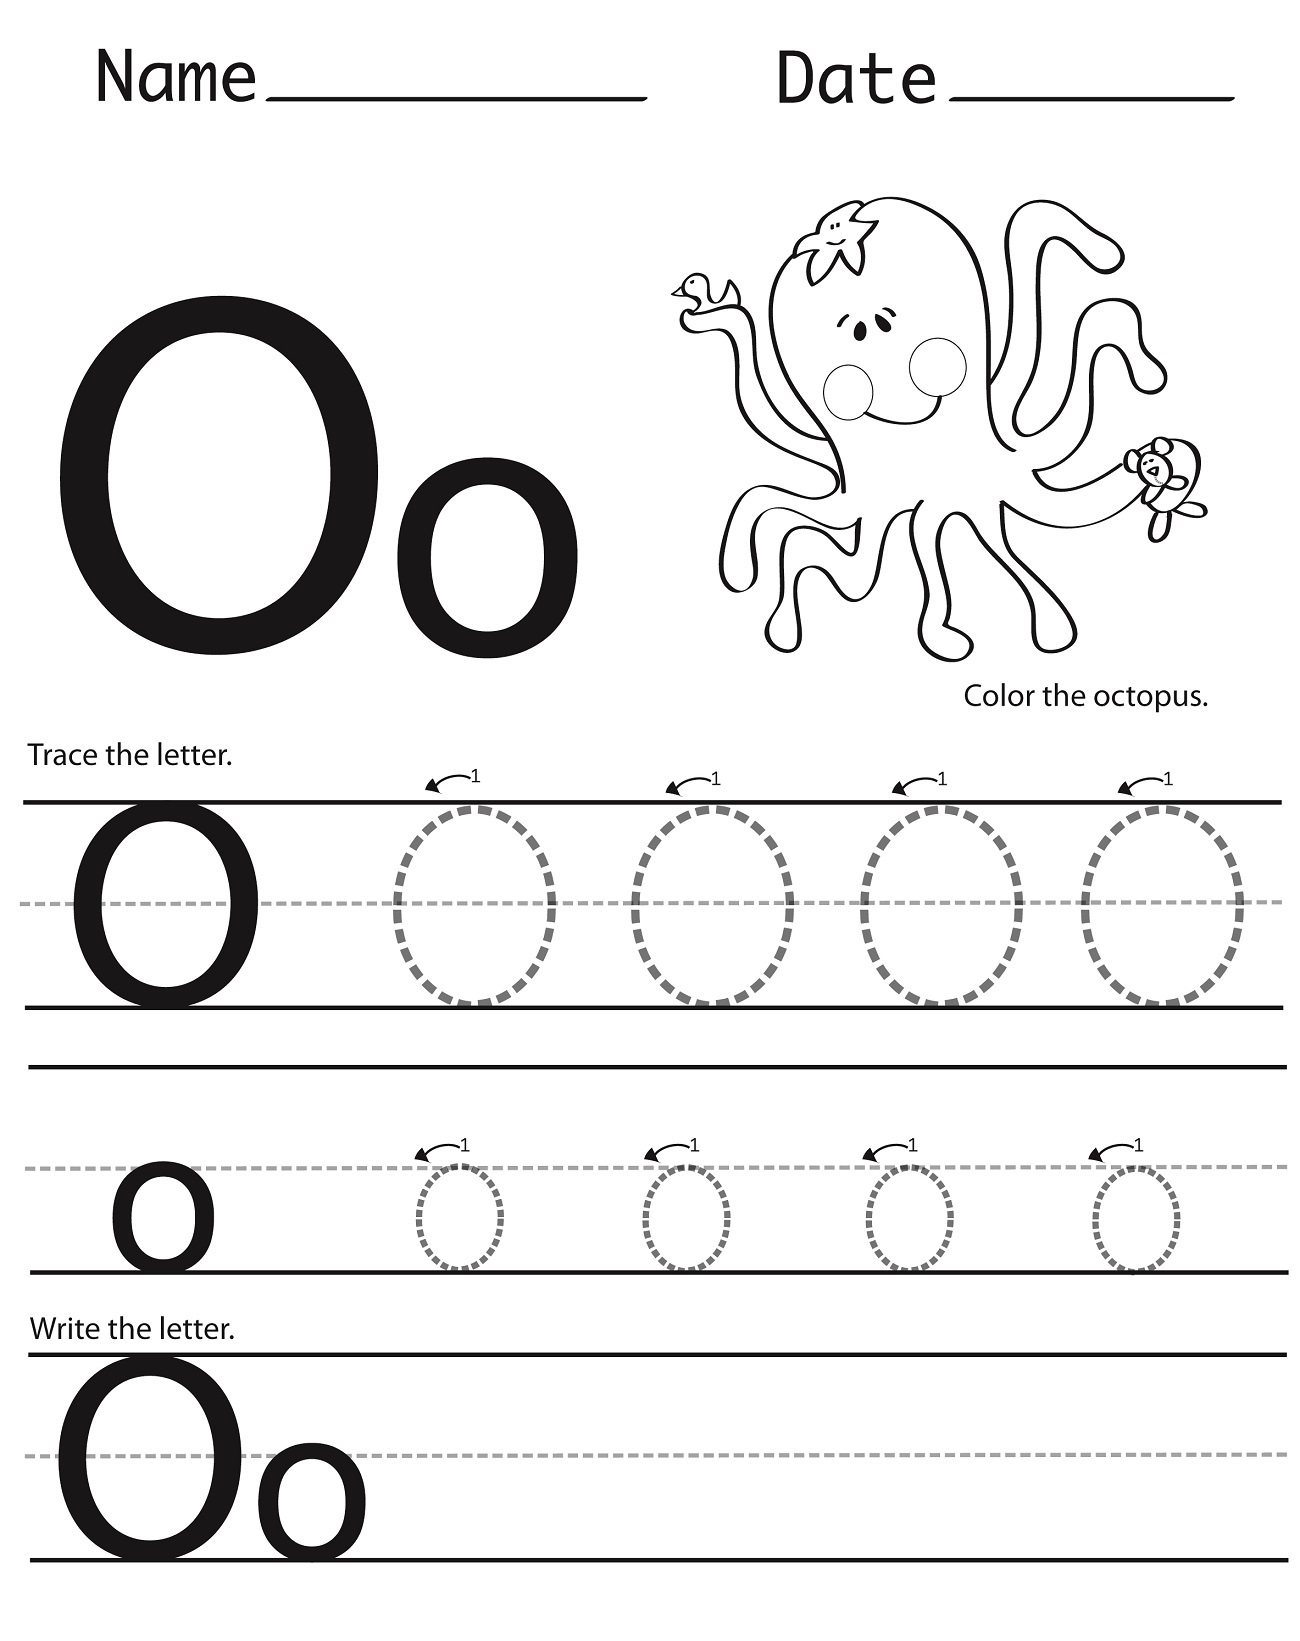 Tracing Letter O Worksheets | Activity Shelter for Letter O Tracing Printable